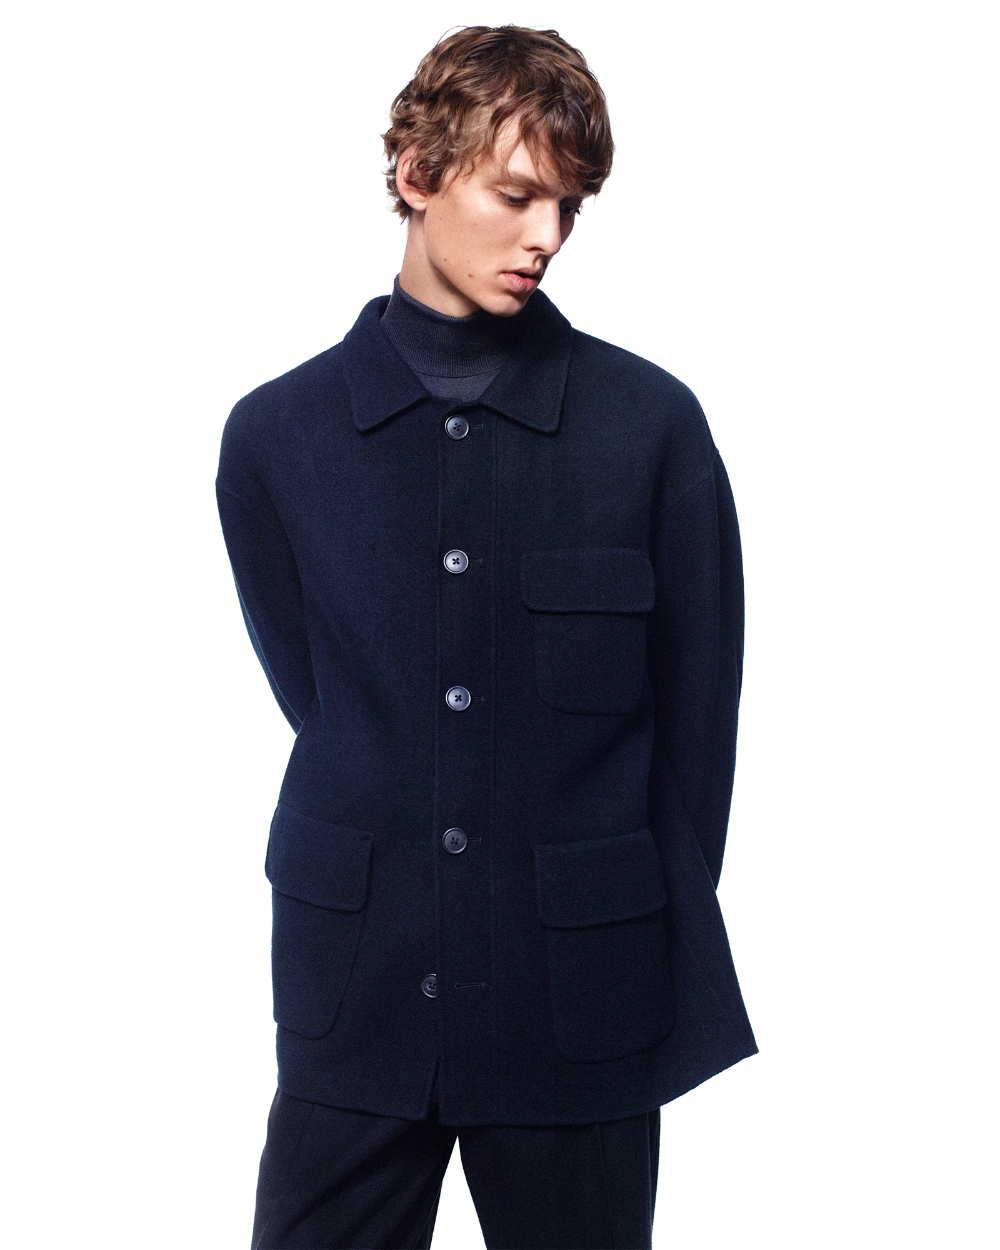 Uniqlo S Legendary Collaboration With Jil Sander Is Back And Better Than Ever Uniqlo Work Jackets Jil Sander [ 1250 x 1000 Pixel ]